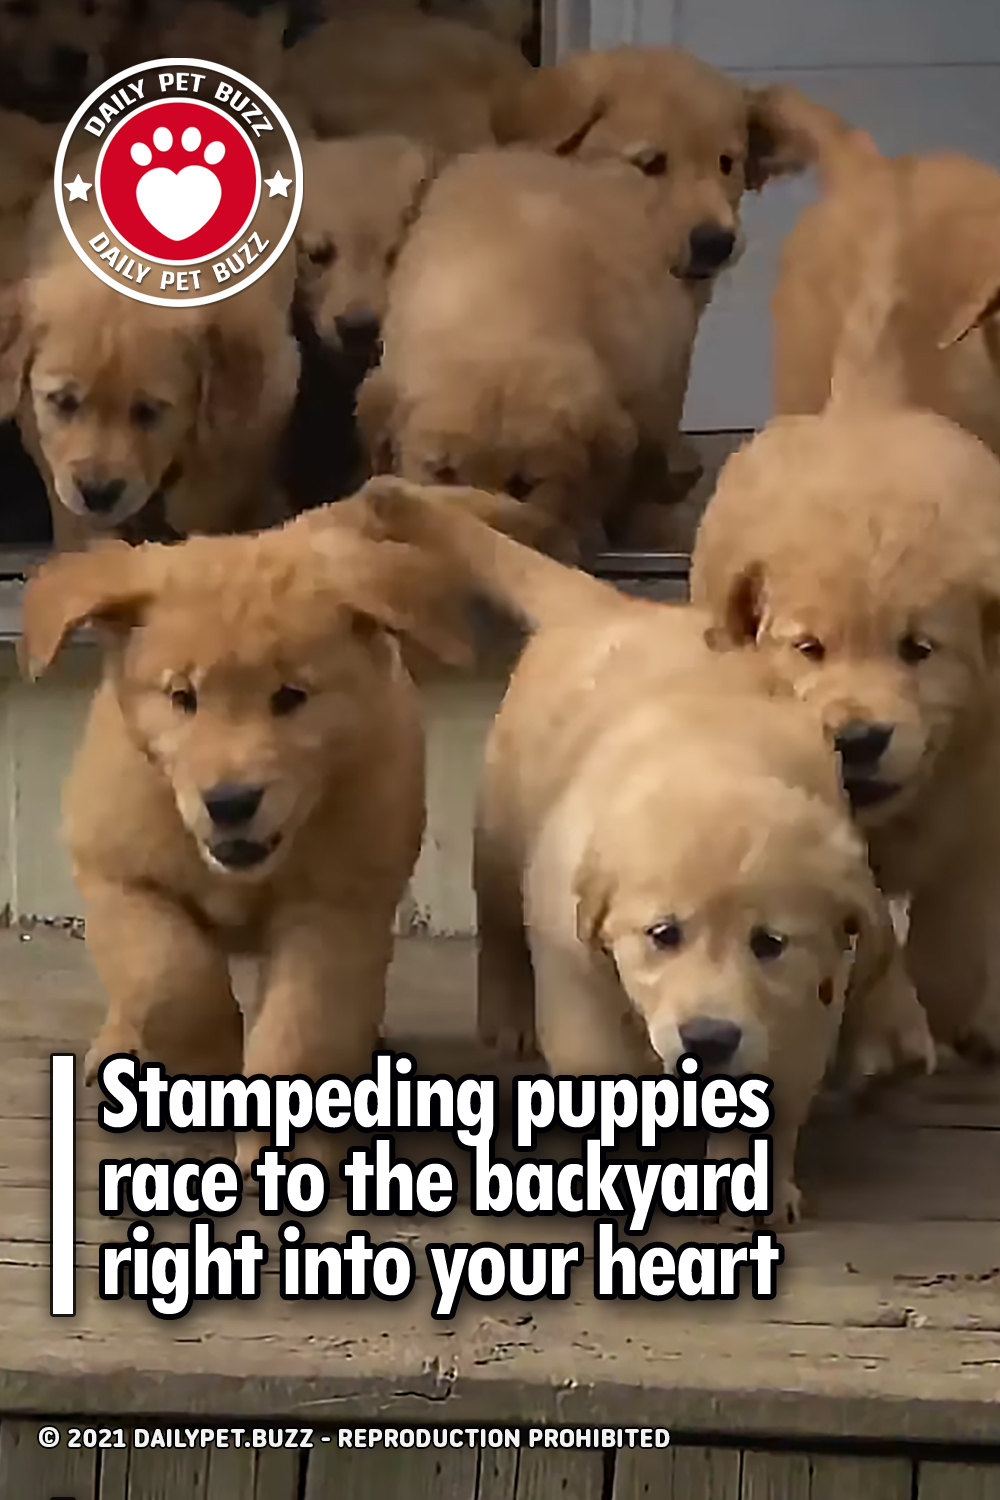 Stampeding puppies race to the backyard right into your heart